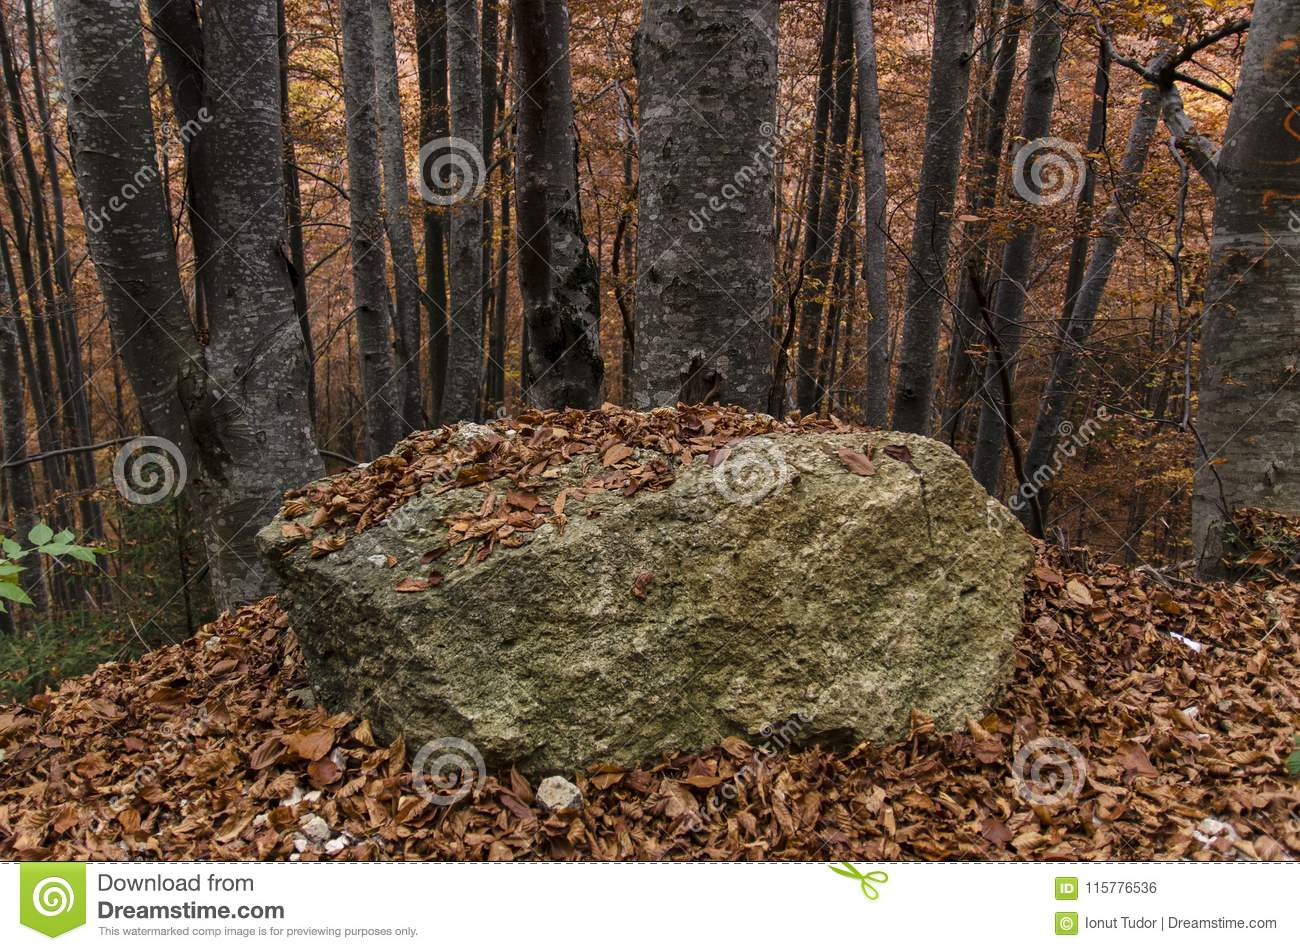 Big rock among old beech trees in autumn